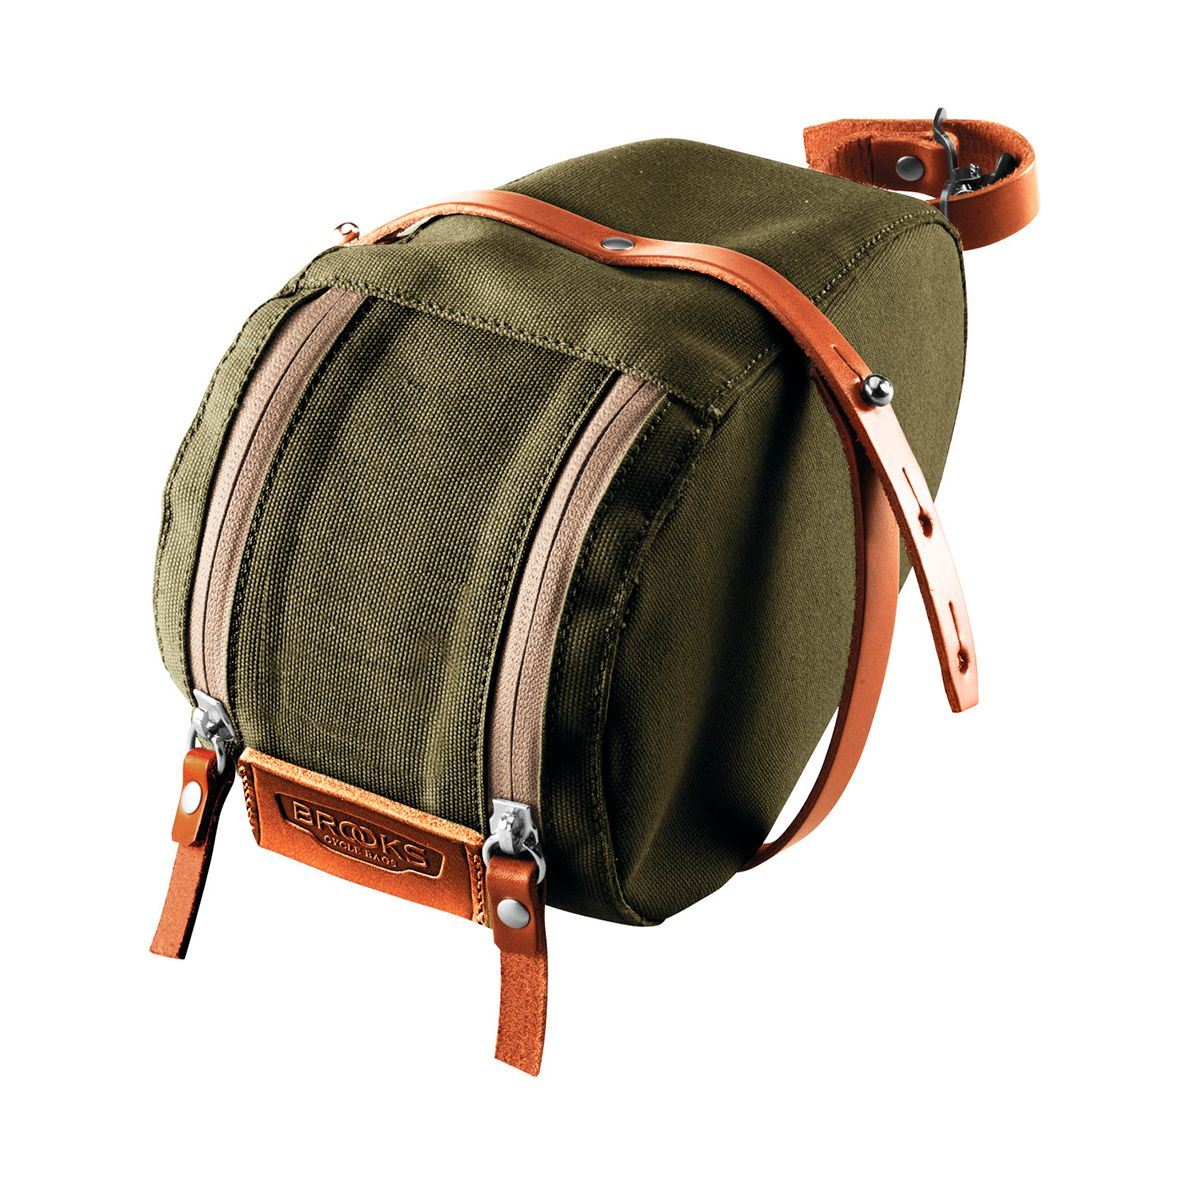 Brooks ISLE OF WIGHT Saddle Bag MEDIUM | Saddle bags